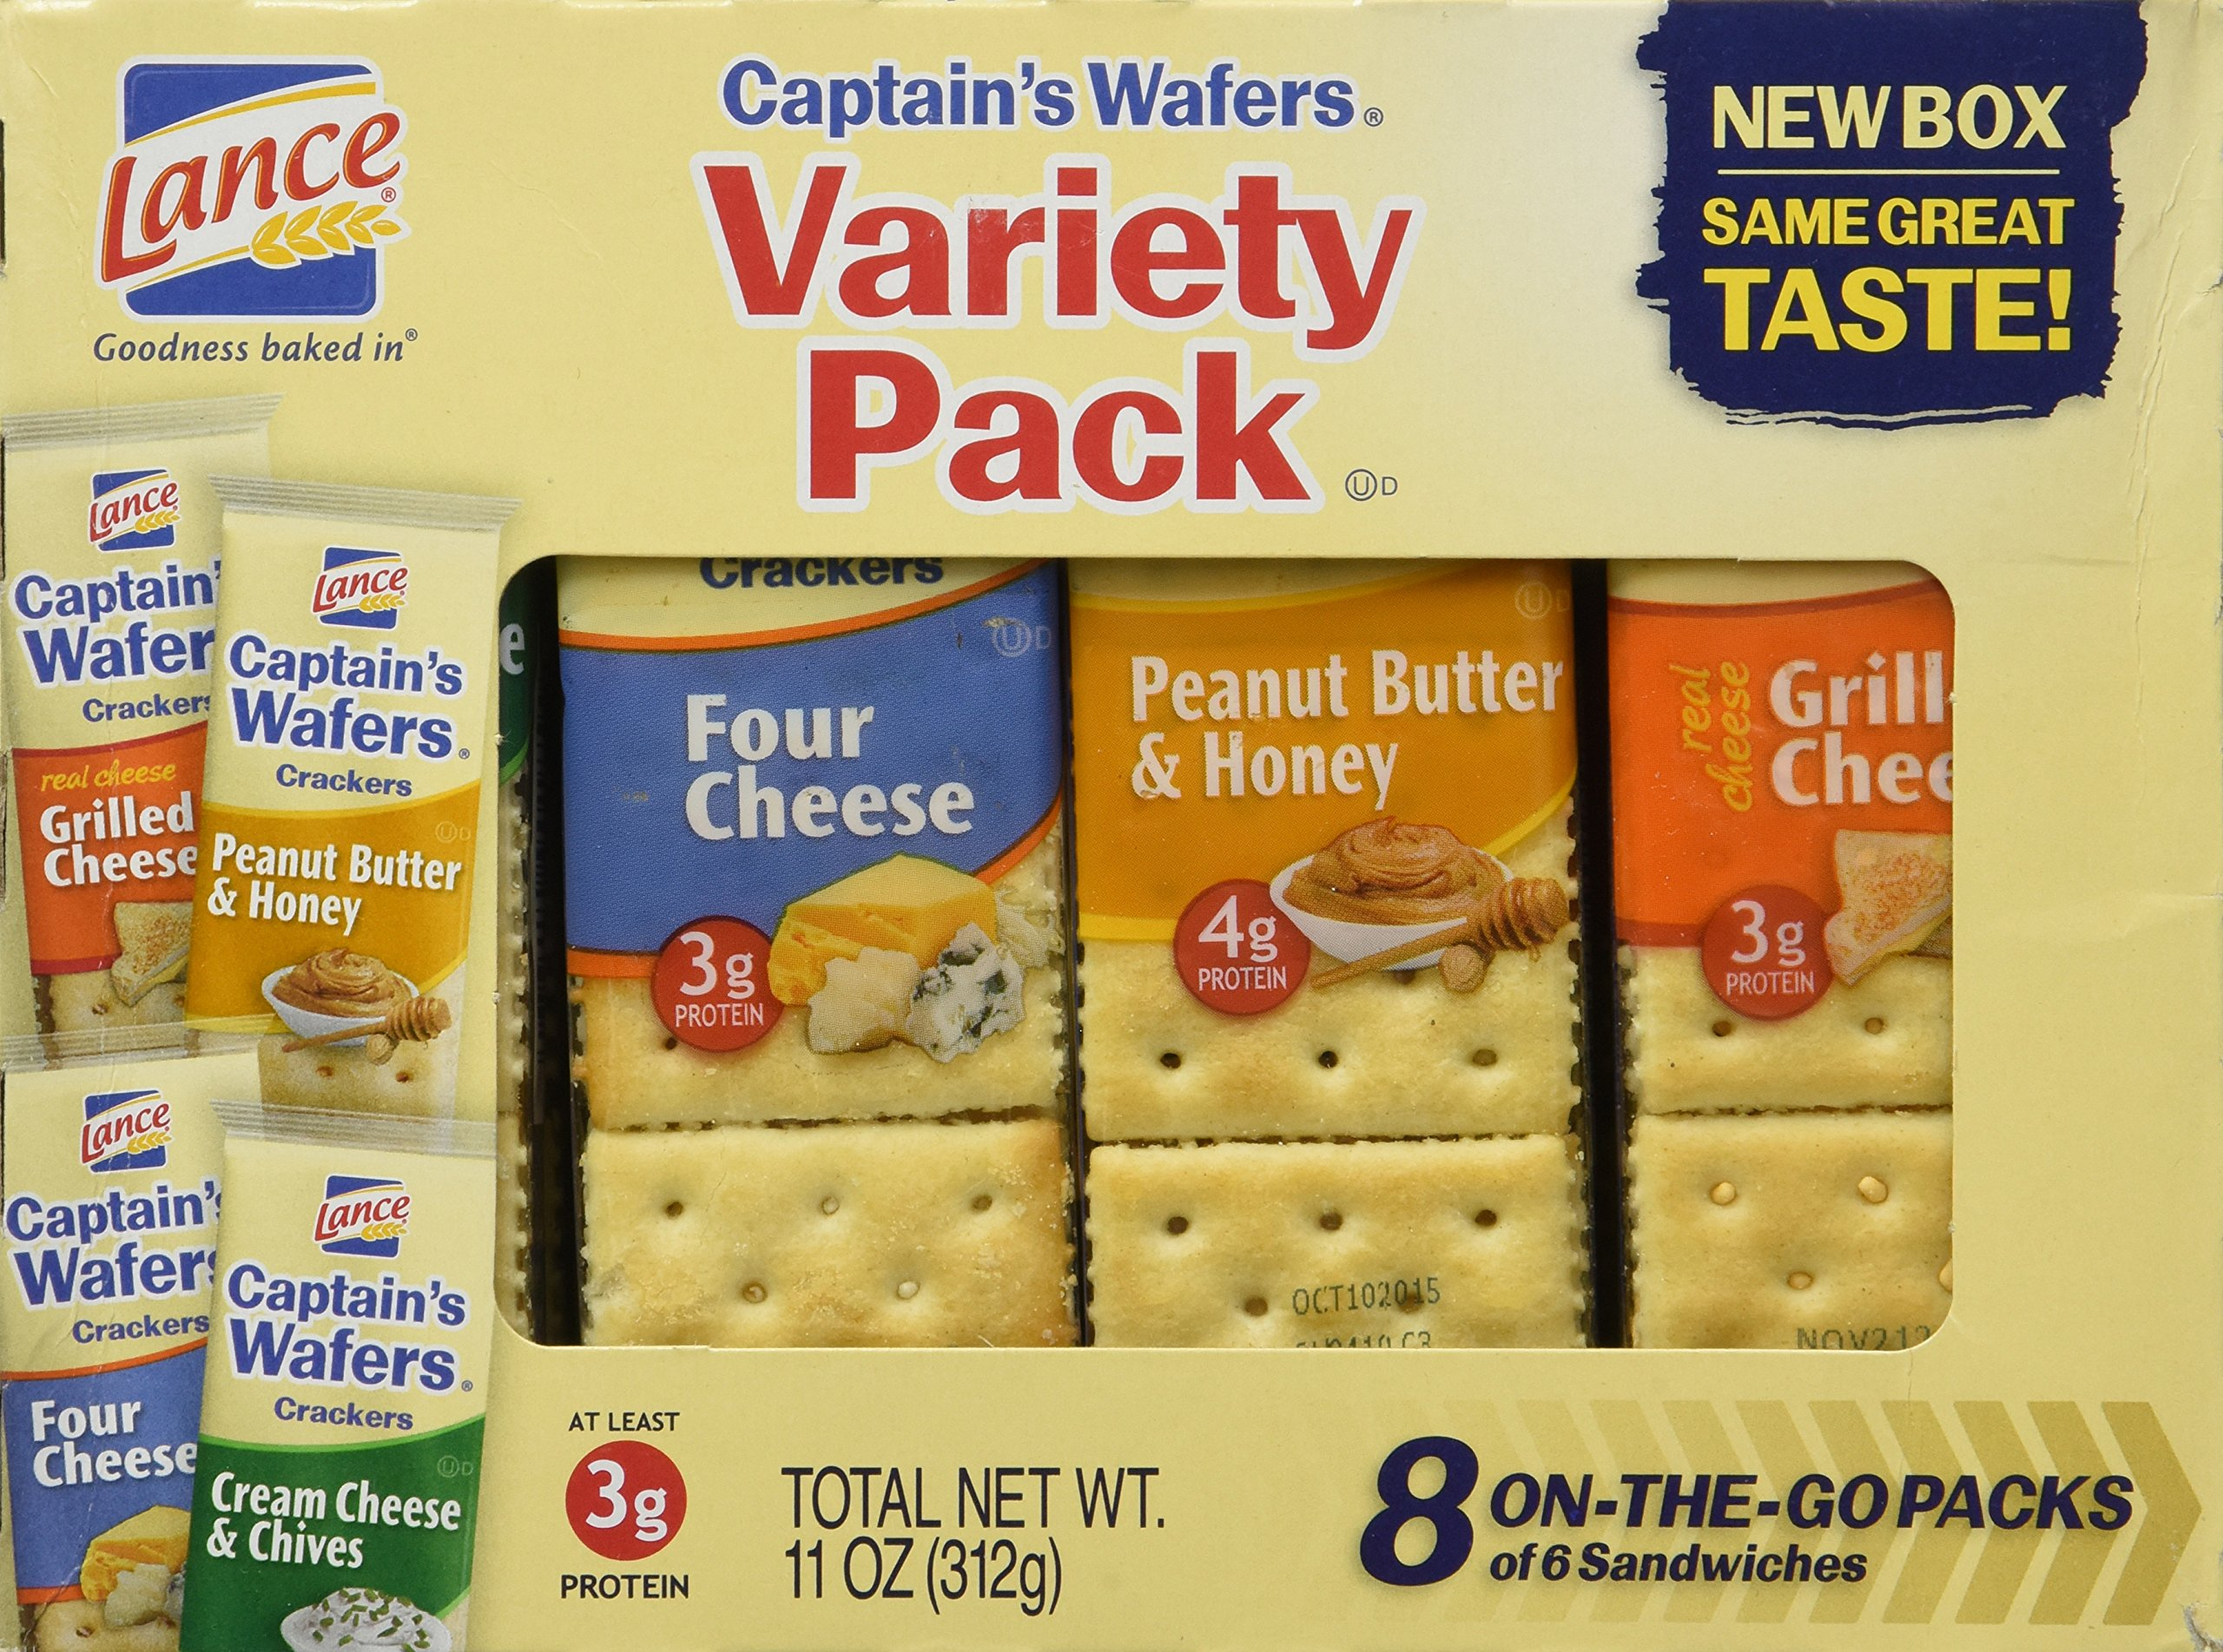 Lance, Captain's Wafer Crackers, Variety Pack, 11oz Tray (Pack of 3) by Lance